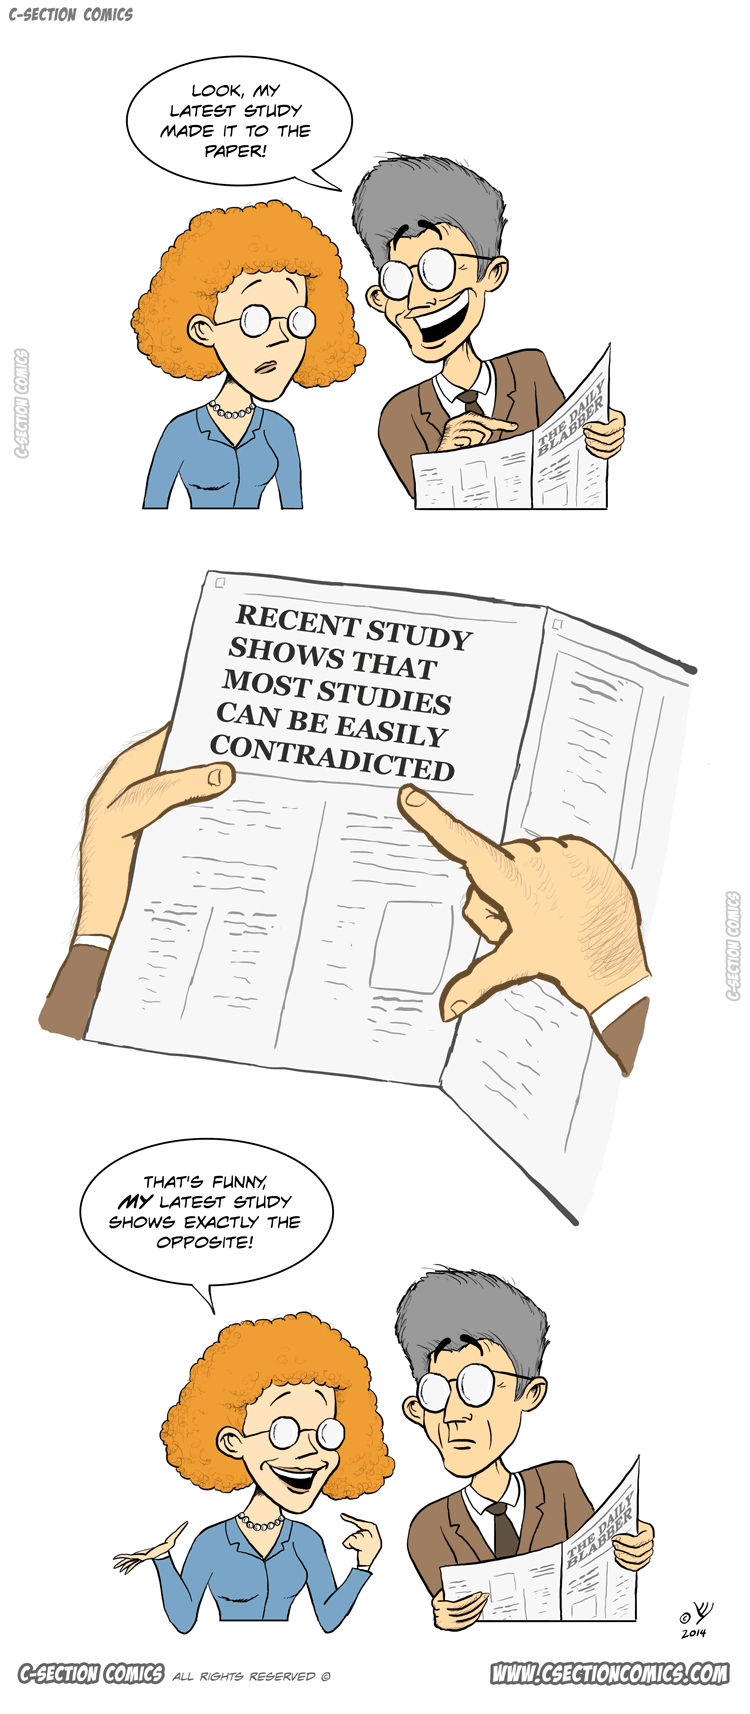 This Latest Study Will Knock You off Your Feet - cartoon by C-Section Comics